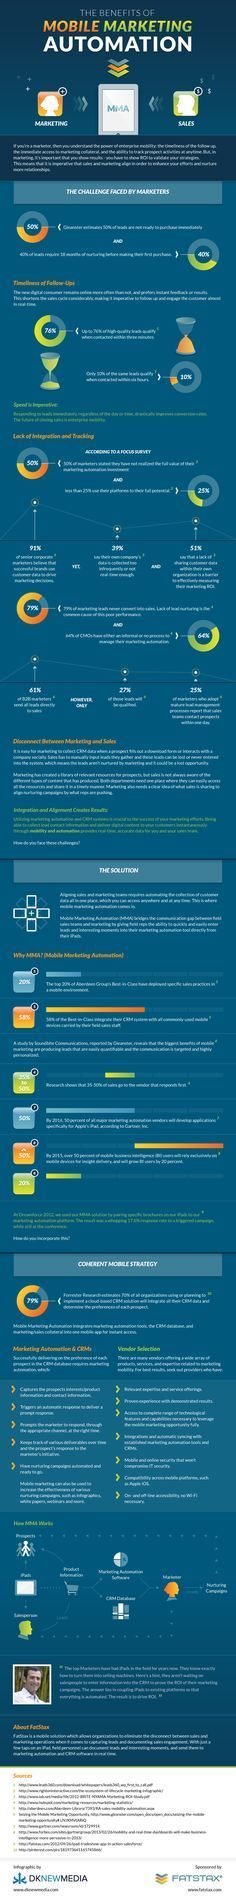 The Benefits of Mobile Marketing Automation [INFOGRAPHIC] #B2BMarketingAutomation #BenefitsofMarketingAutomation